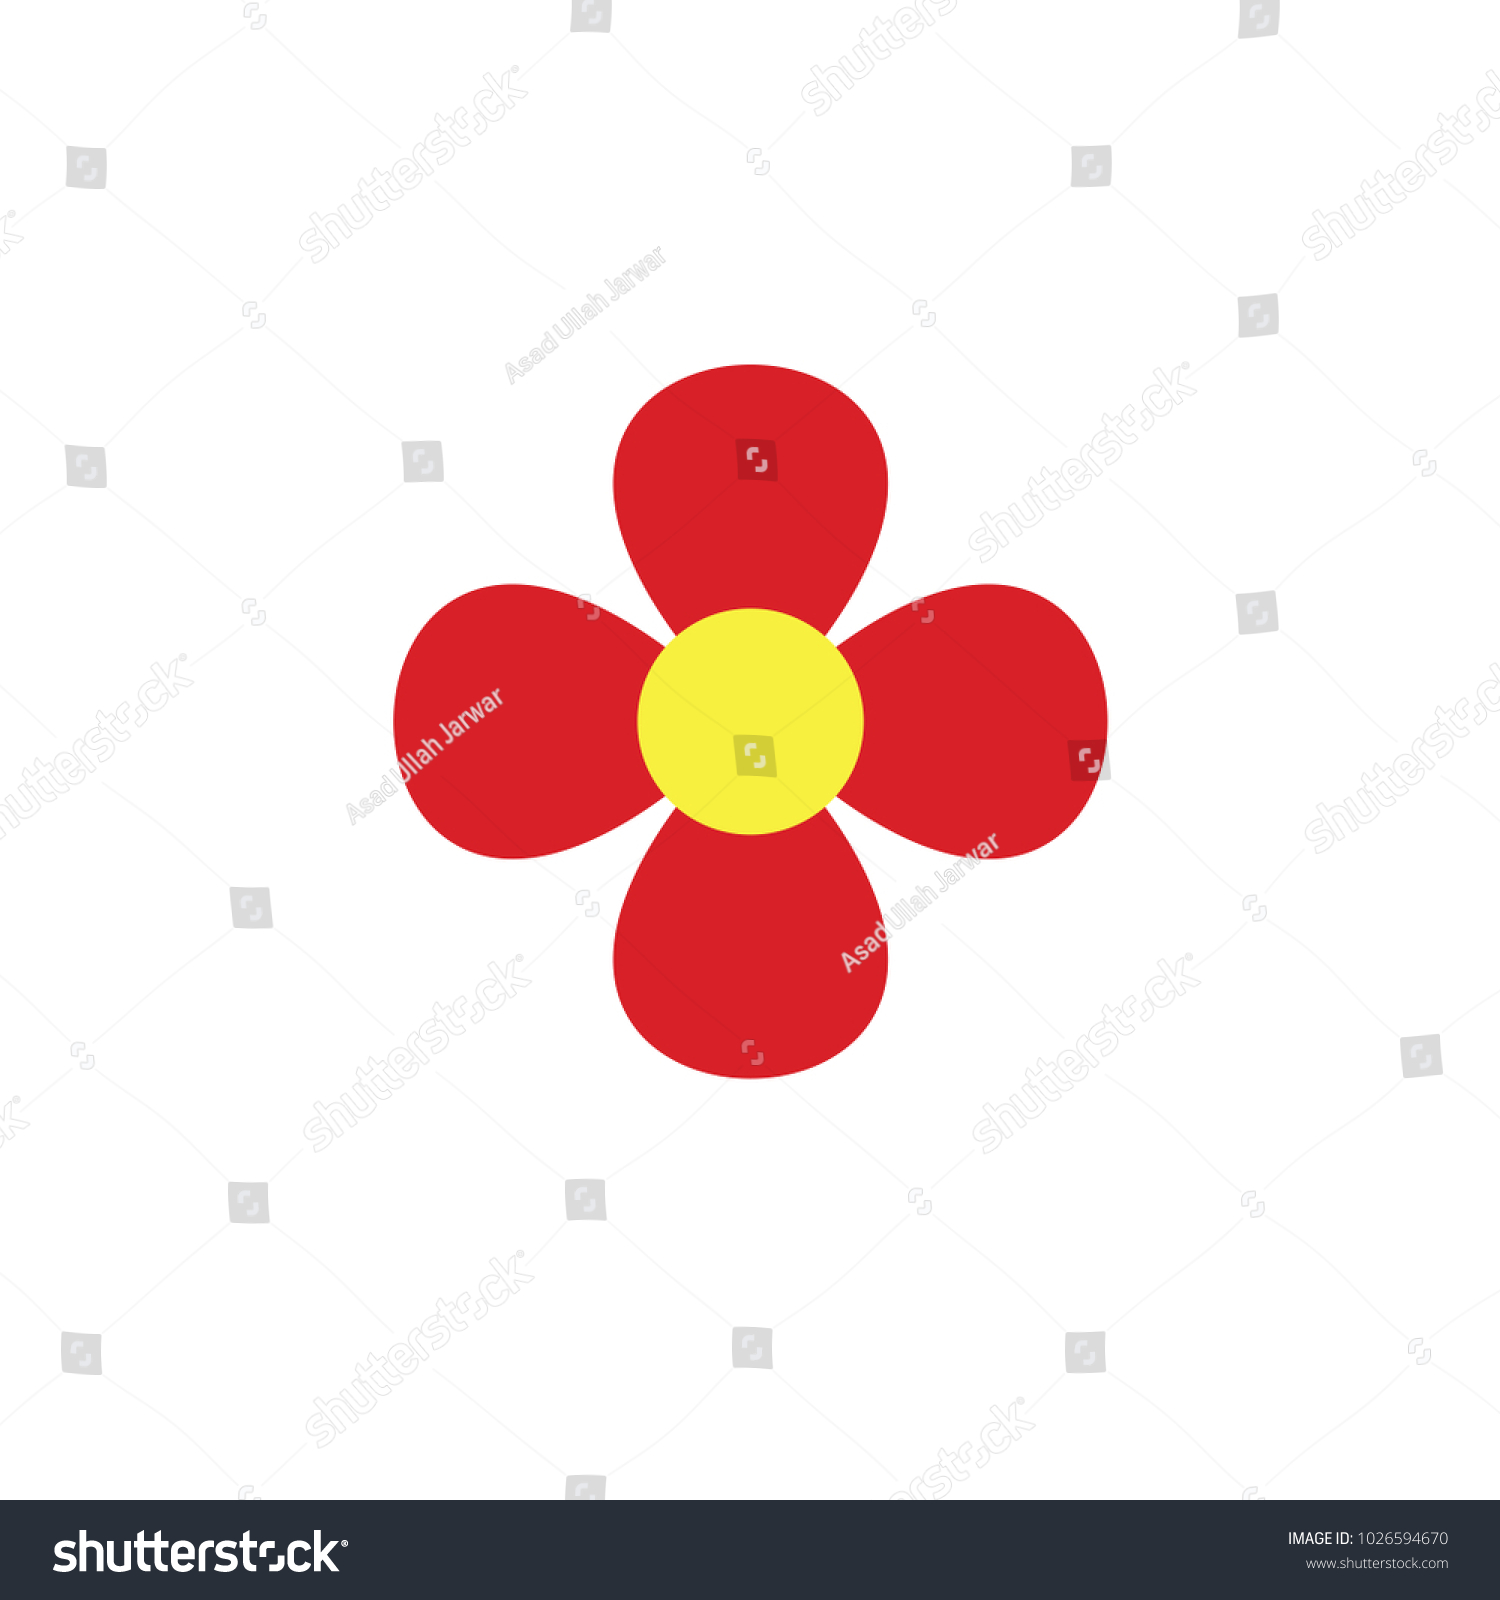 Flowers Used Show Love Sympathy Respect Stock Vector 1026594670 ...